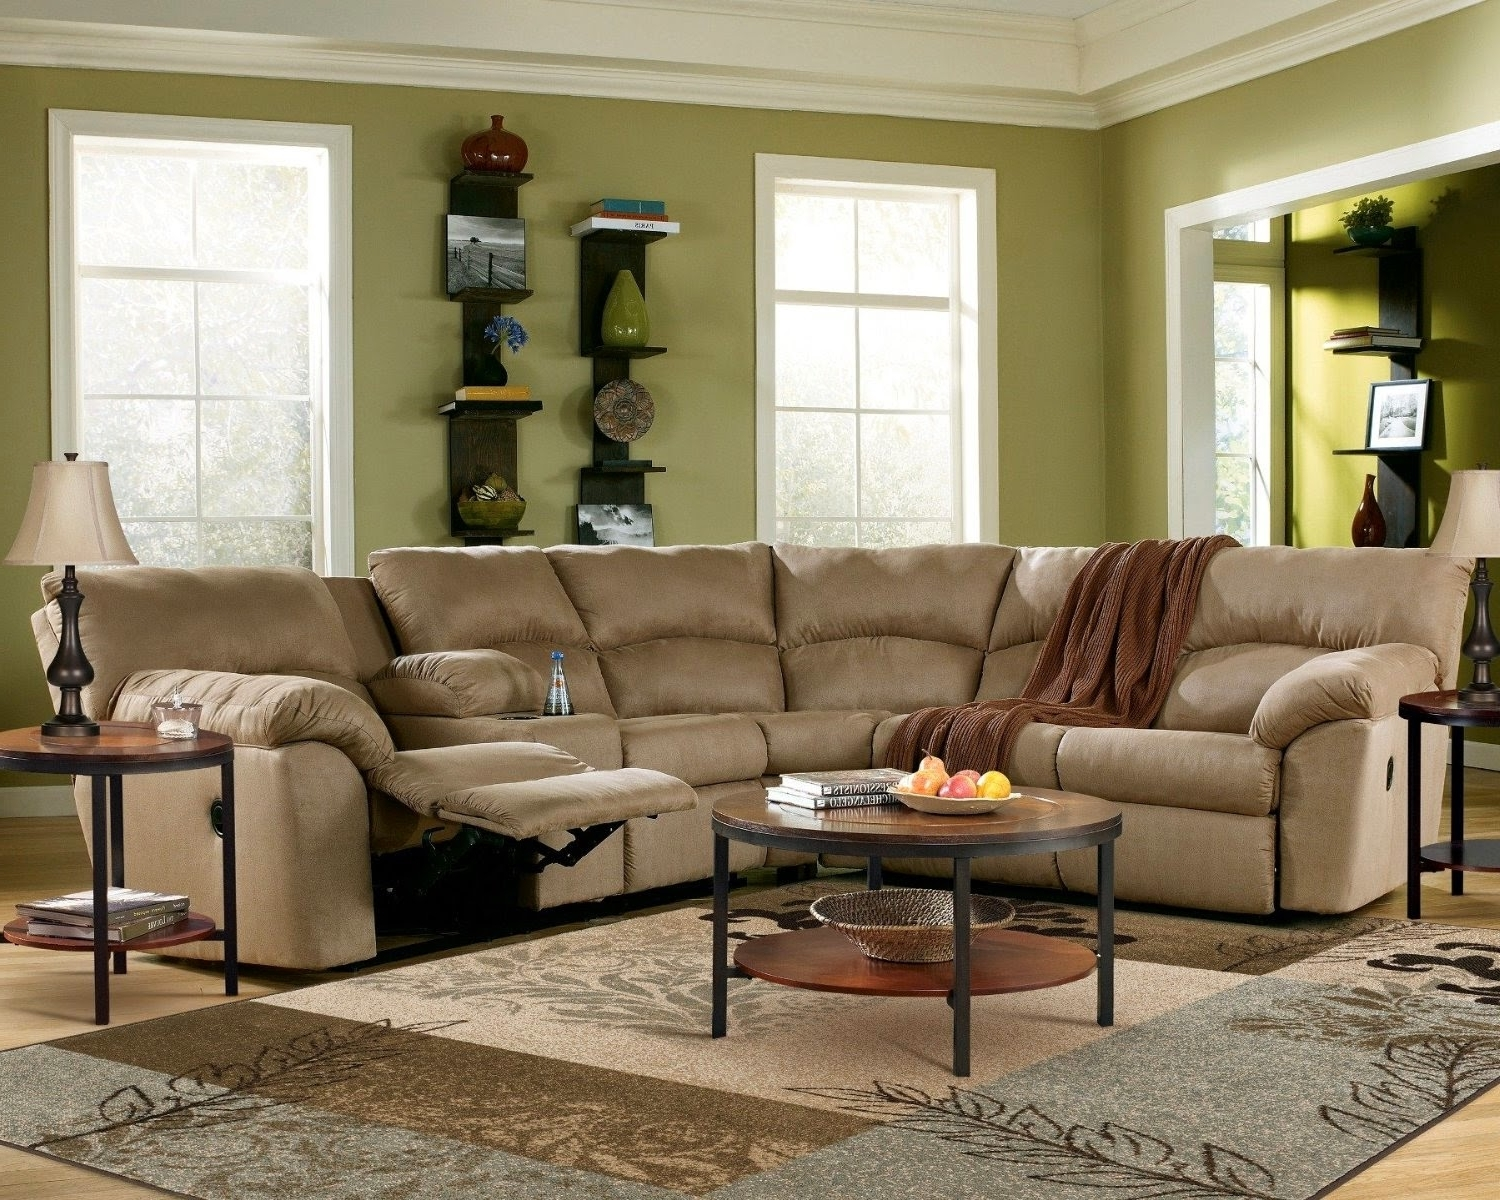 Current Curved Sofa: Curved Reclining Sofa With Curved Sectional Sofas With Recliner (View 1 of 15)